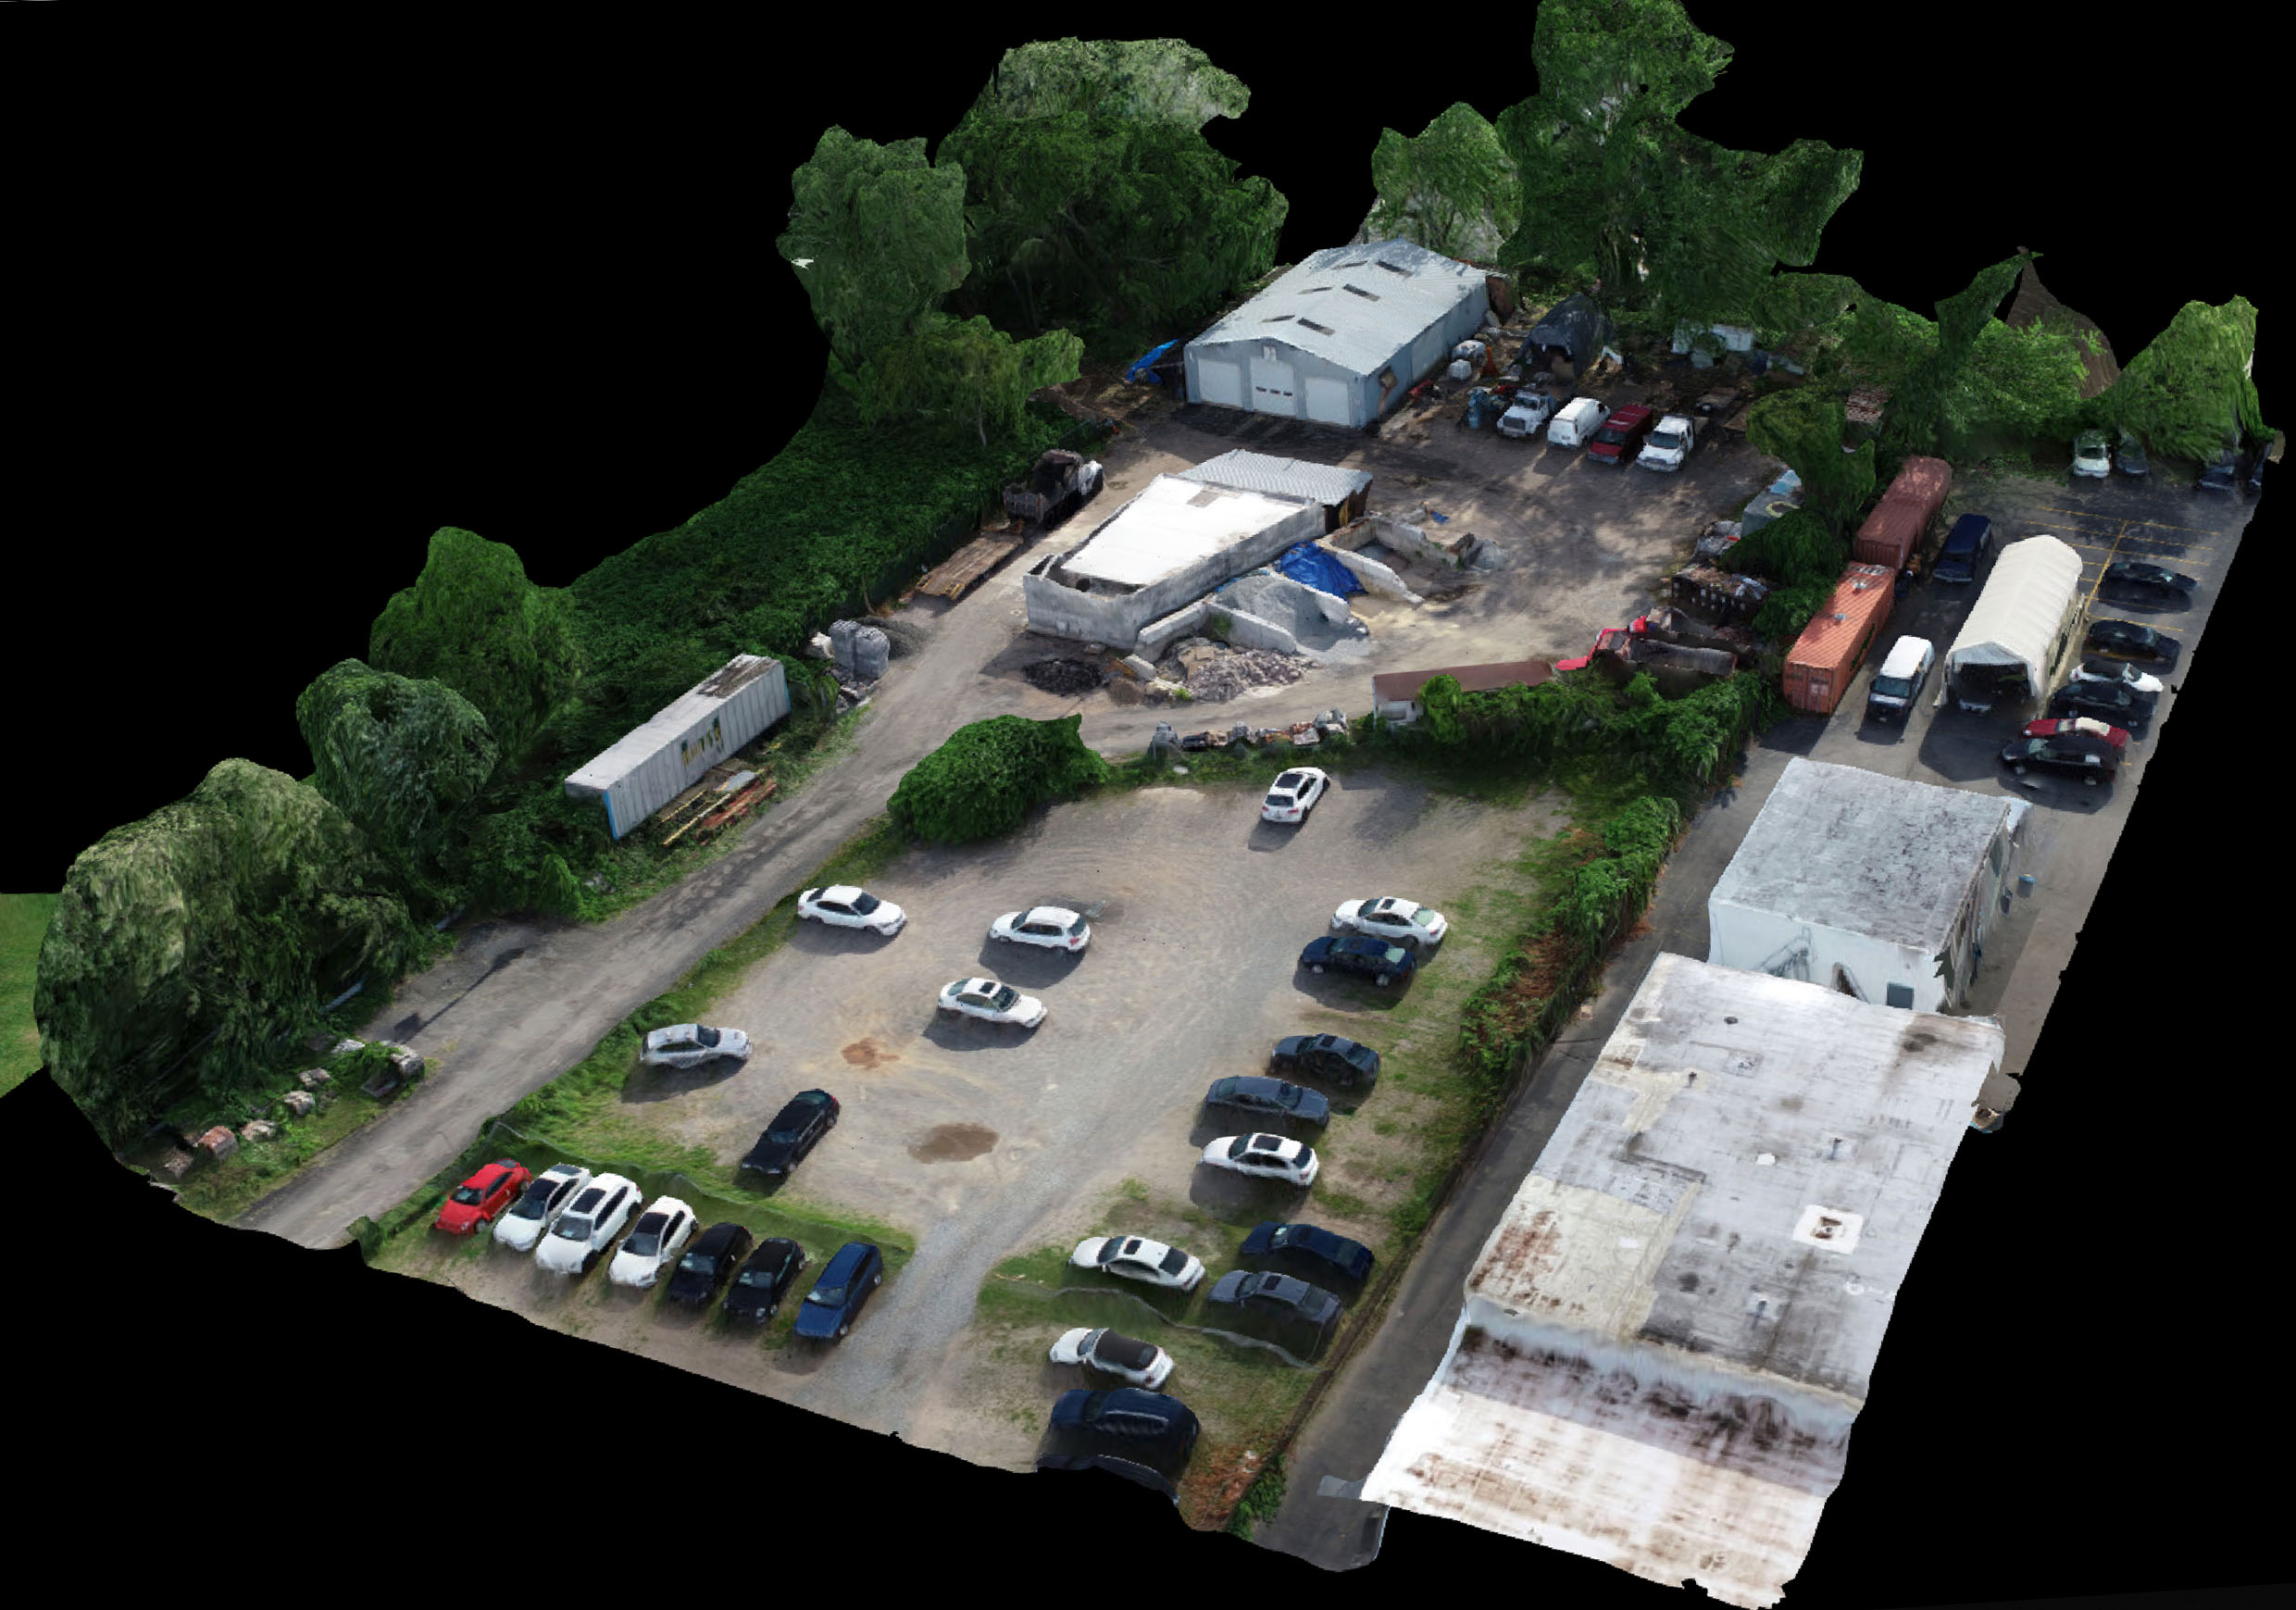 3d Mapping Image